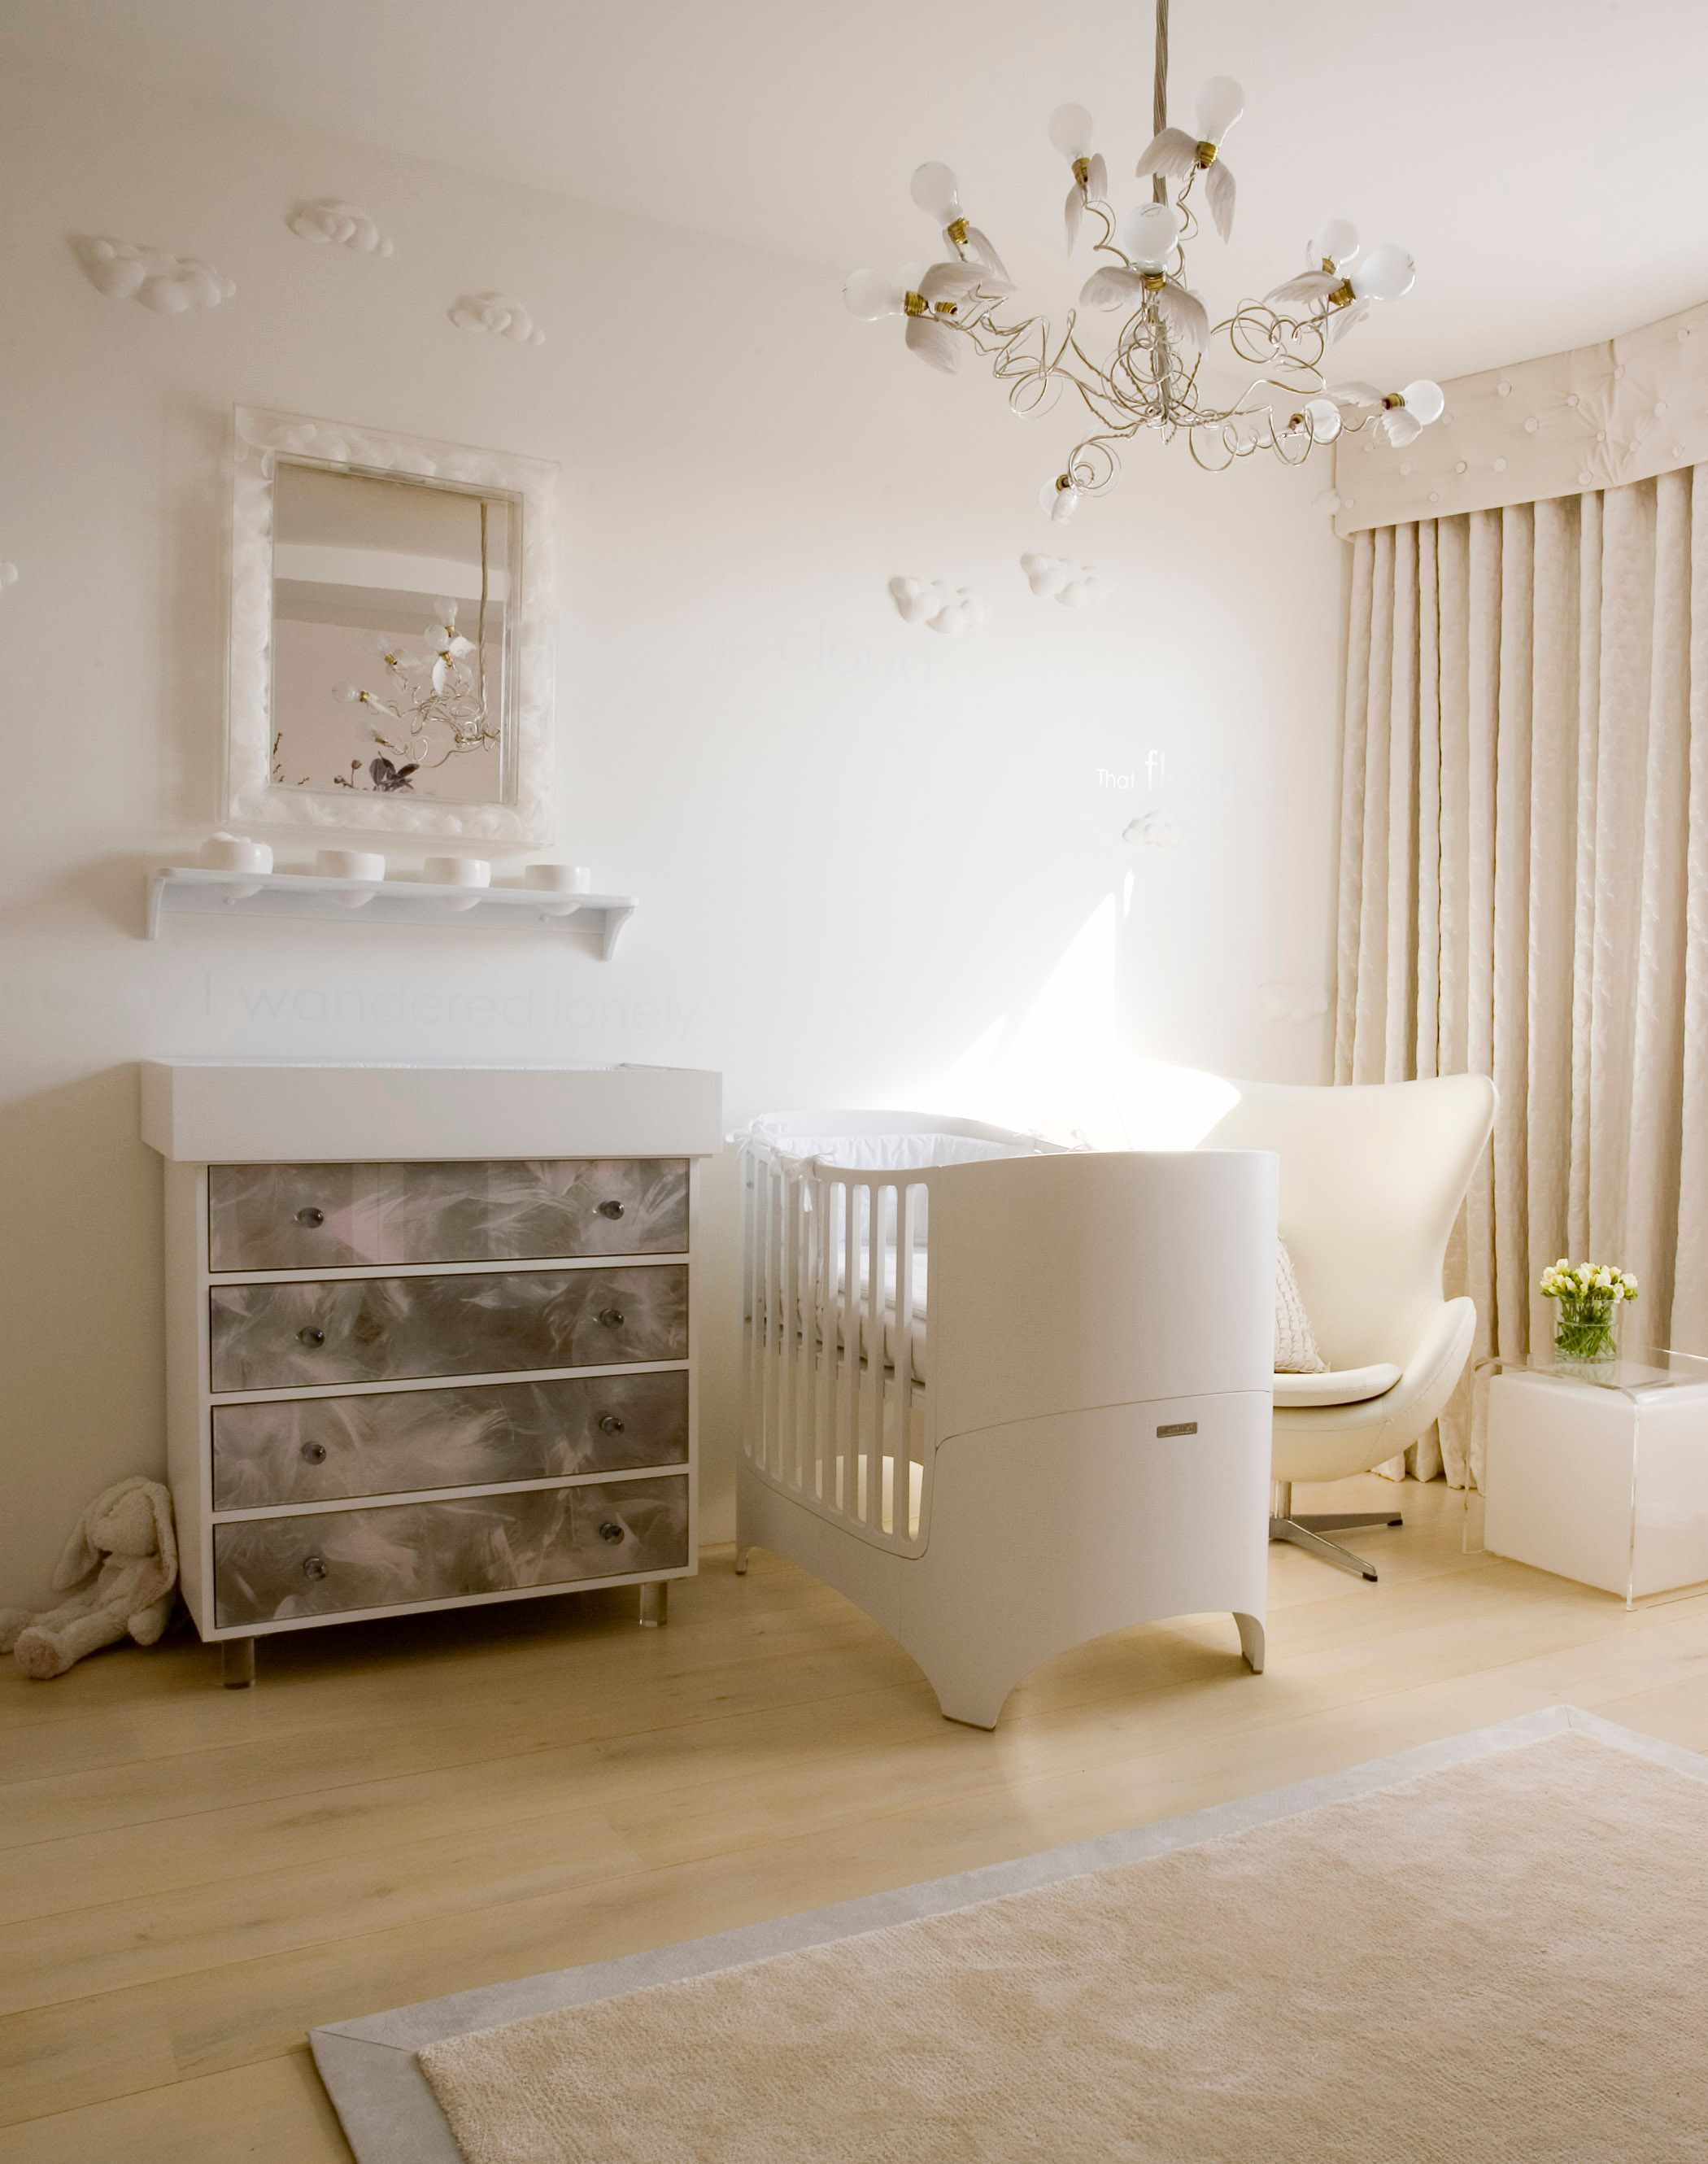 nursery-trends-the-colours-baby-furniture-and-accessories-that-are-hot-right-now_20909